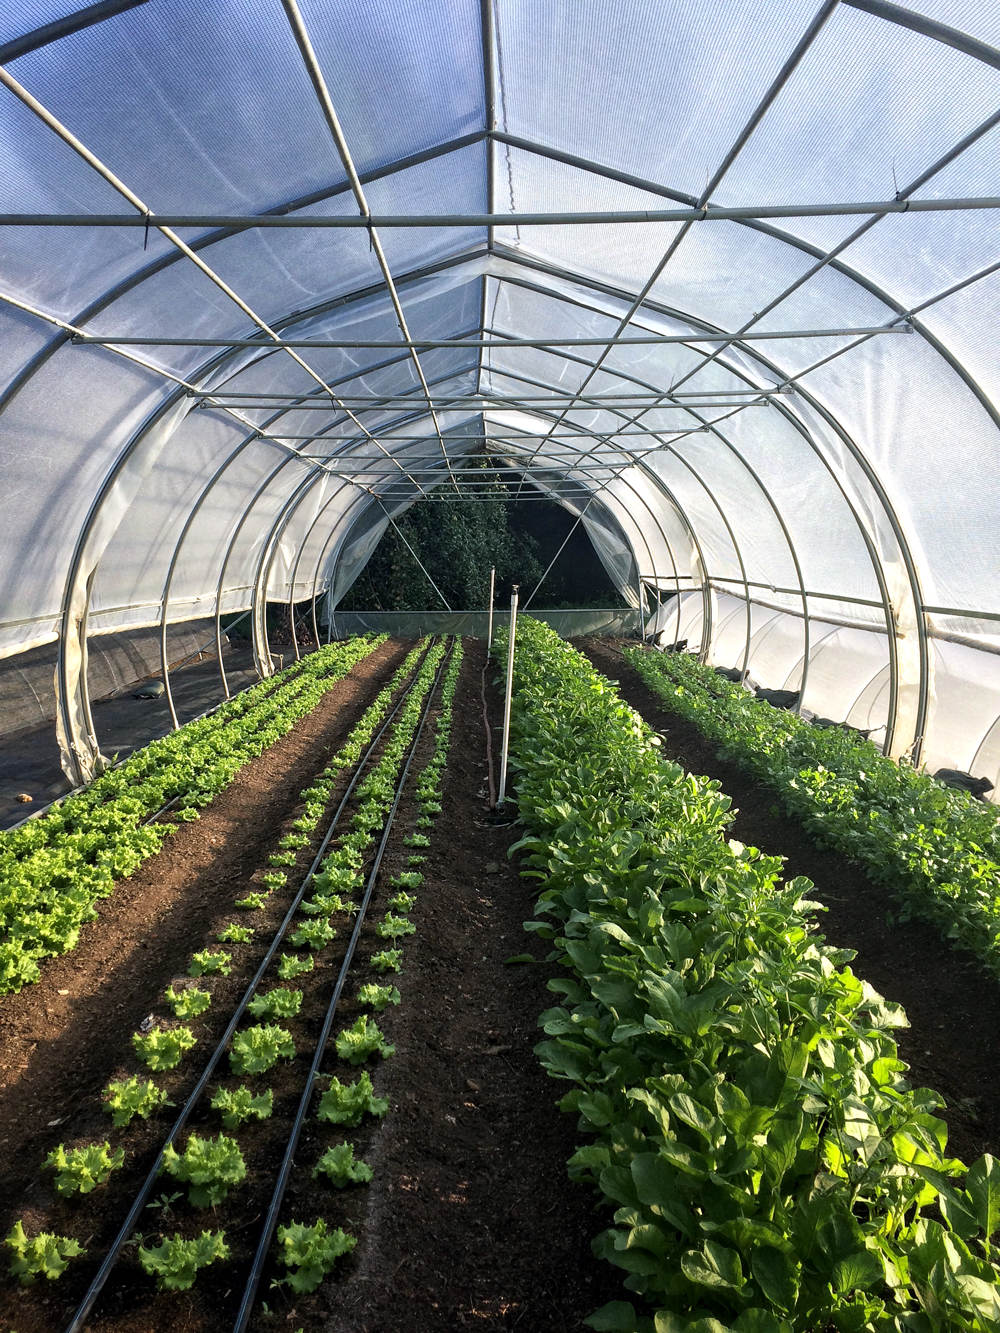 hoop house with greens